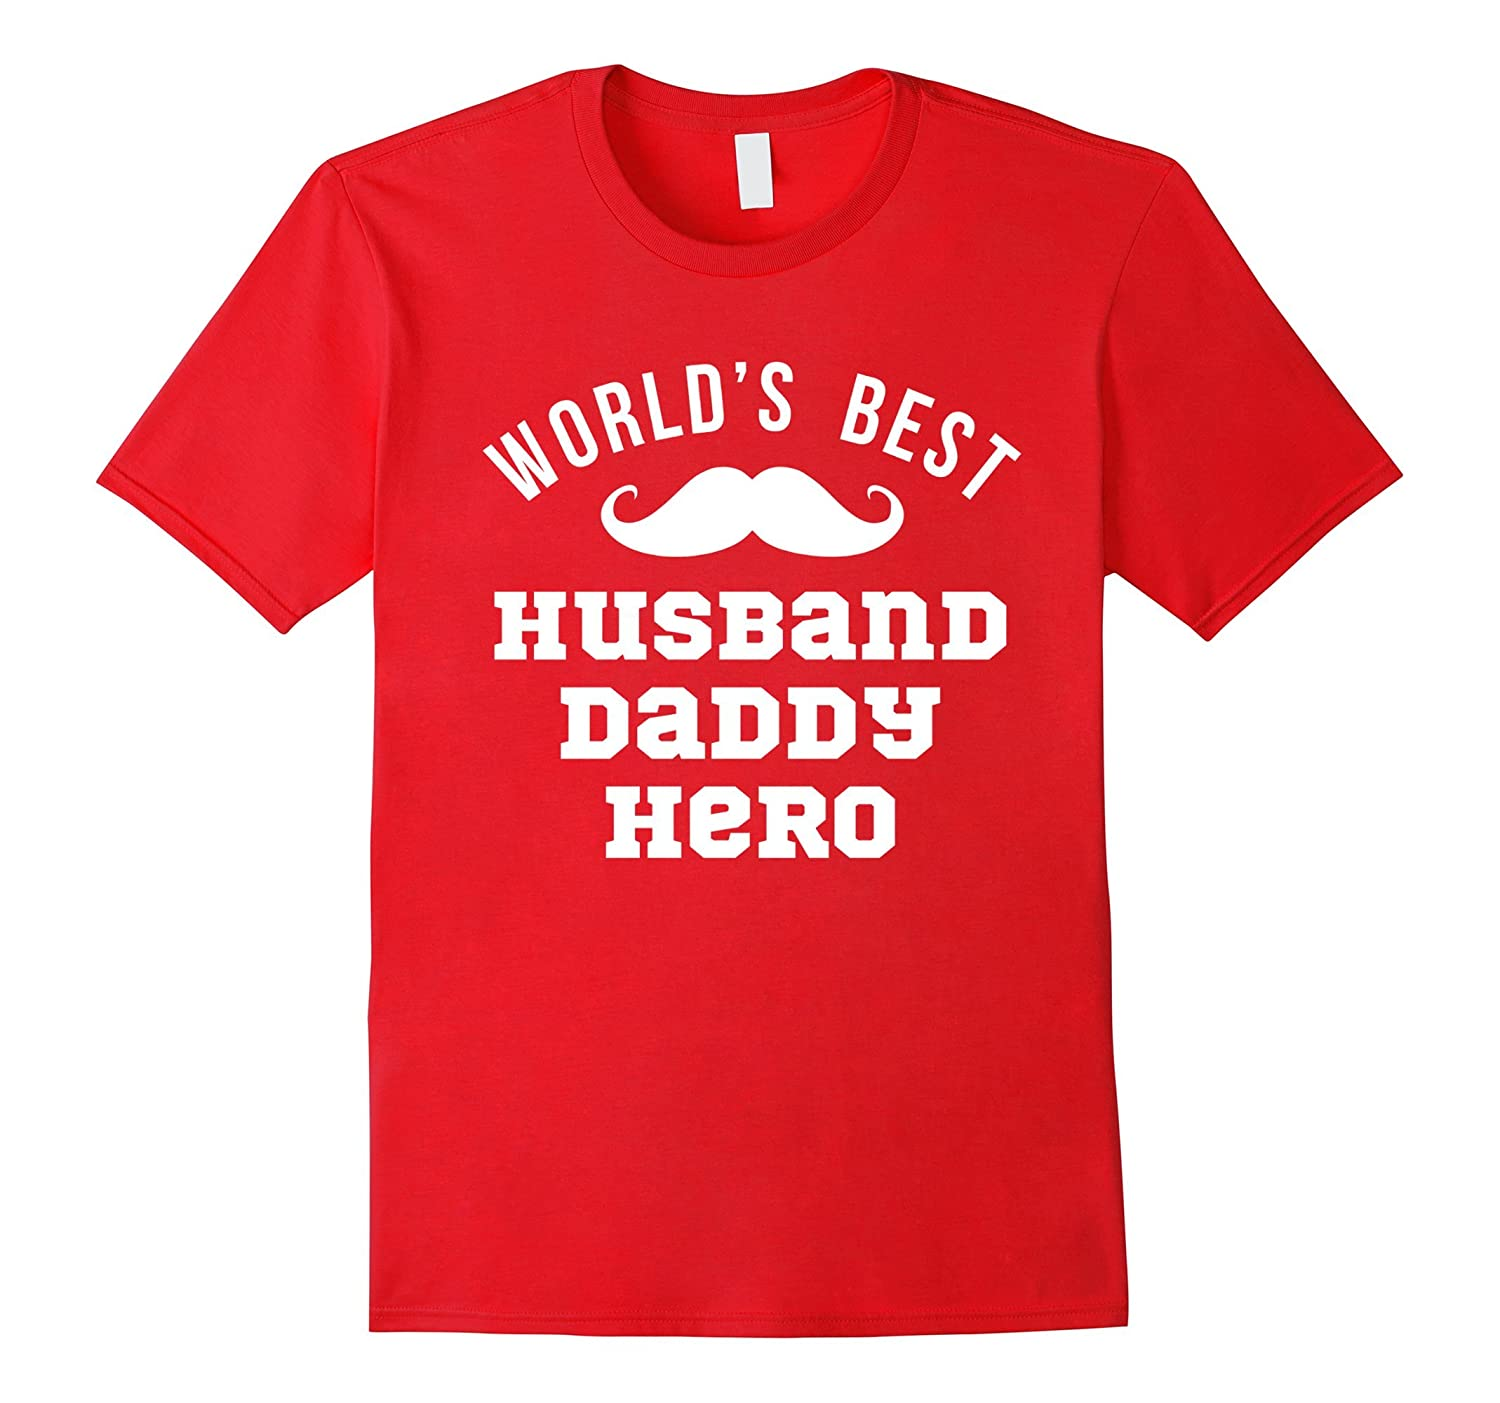 6ac0a804 Worlds Best Husband Daddy Hero Shirt Fathers Day Gift Dad – Brvttee.com